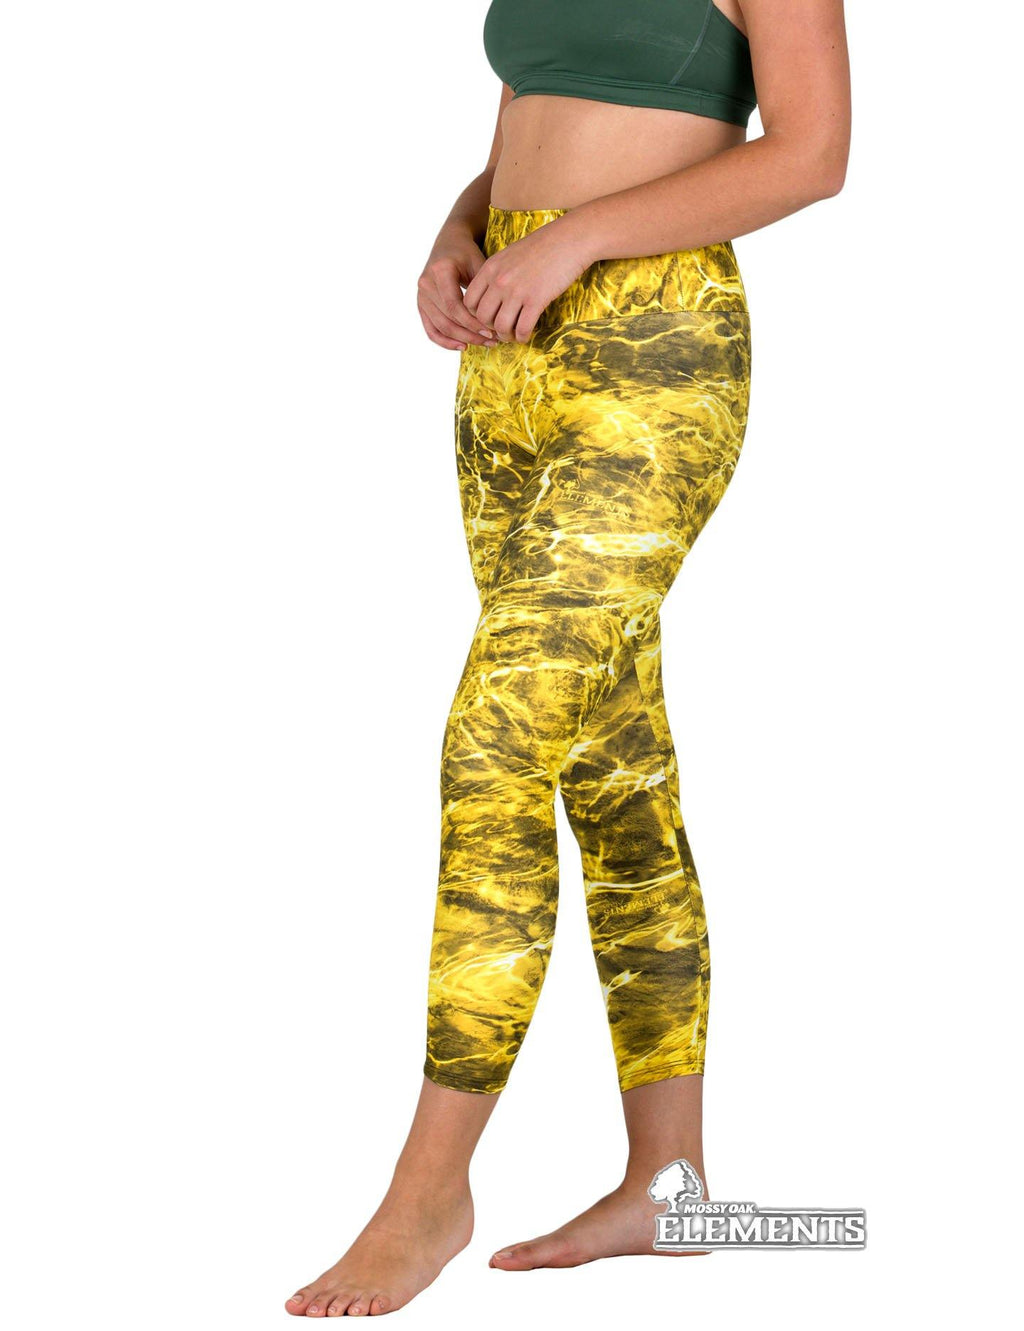 Apsara Leggings High Waist Cropped, Mossy Oak Yellowfin - Apsara Style